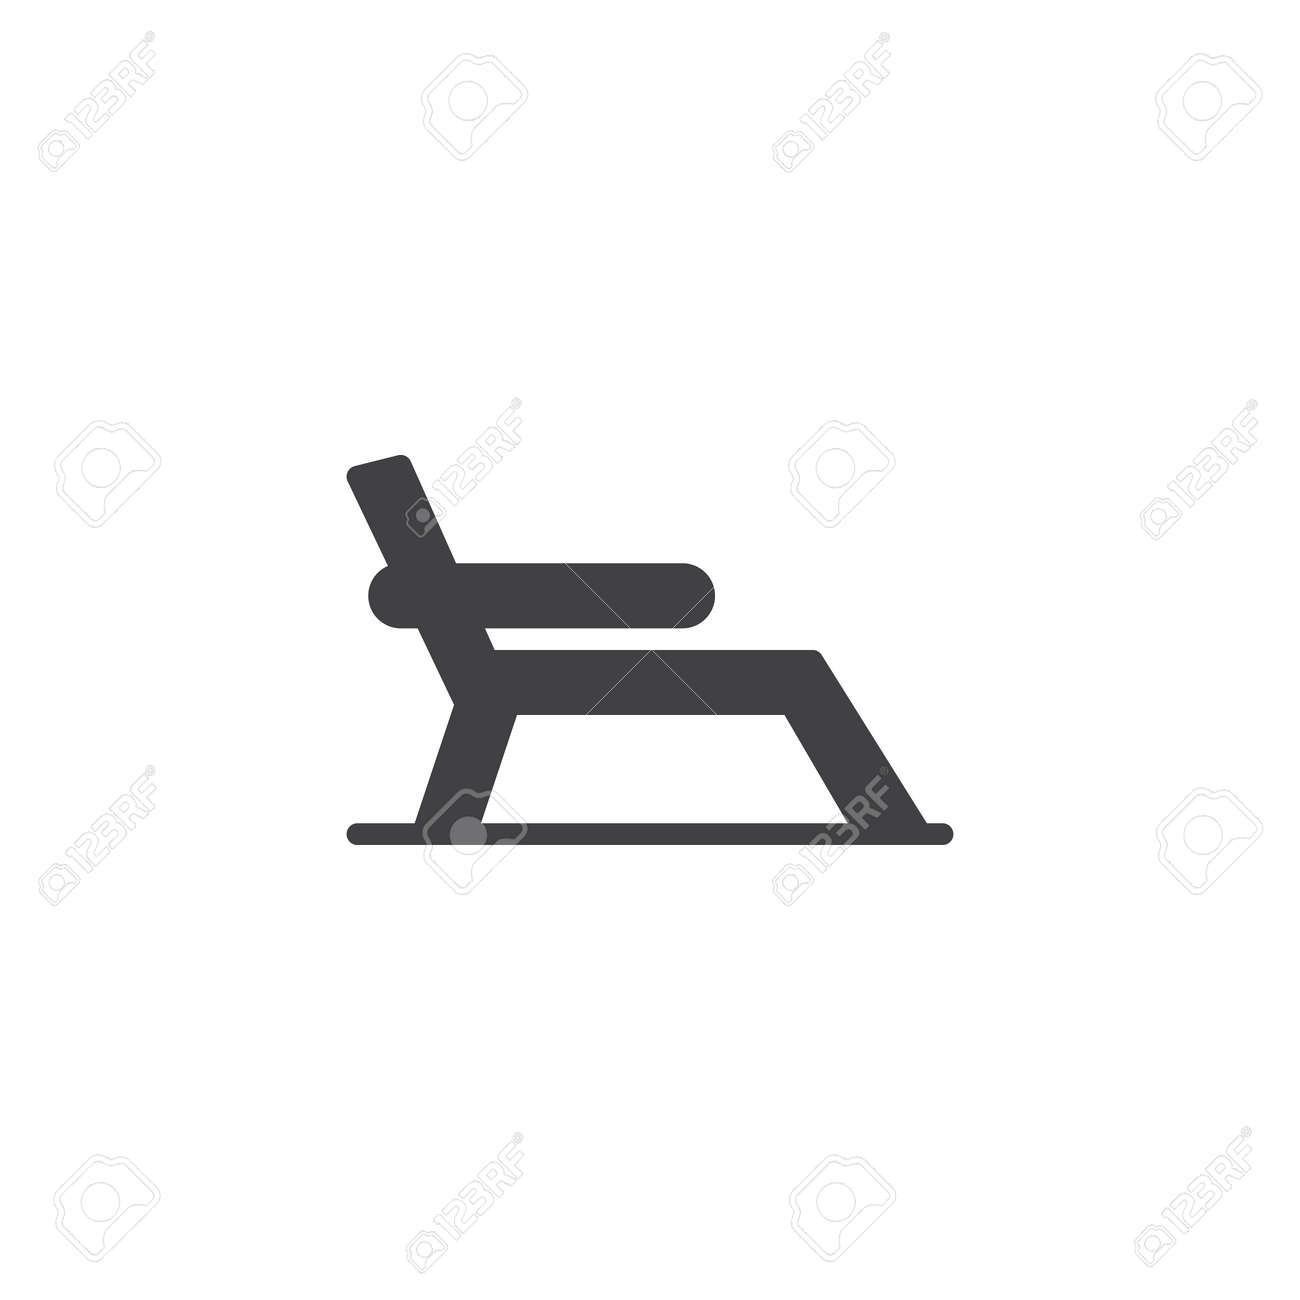 Beach Chair Vector Icon Filled Flat Sign For Mobile Concept Royalty Free Cliparts Vectors And Stock Illustration Image 102187526